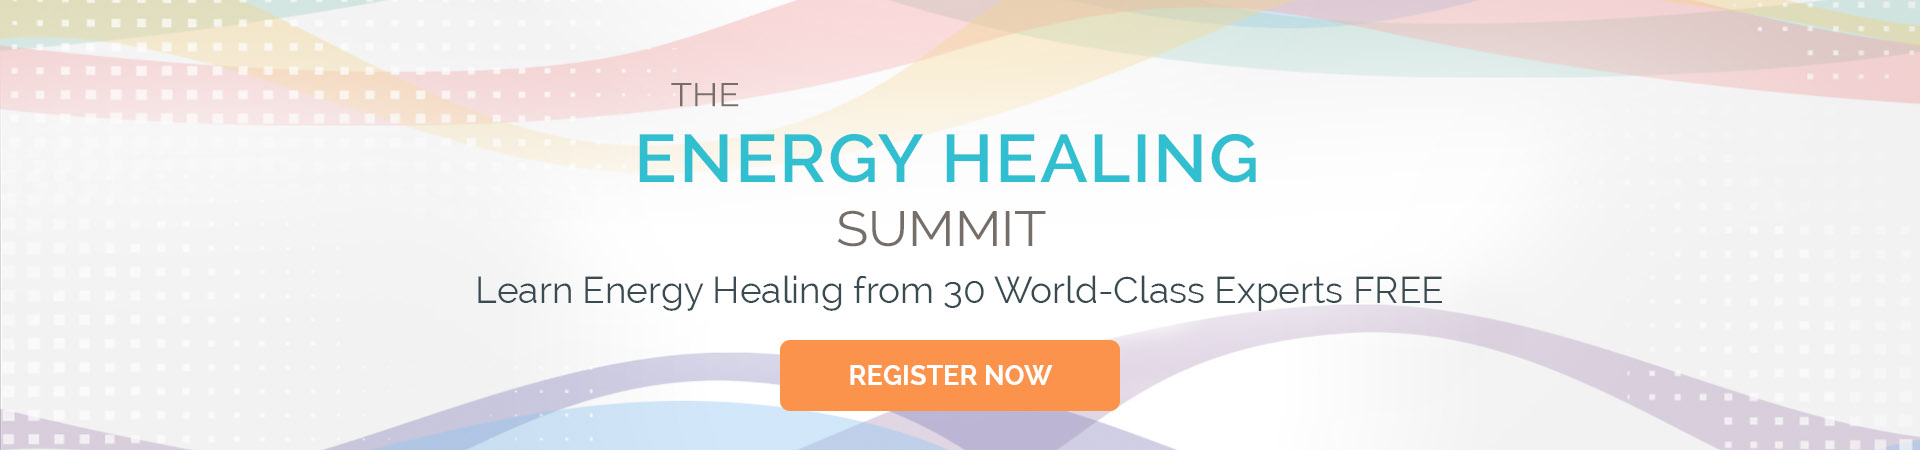 The Energy Healing Summit - Register Now